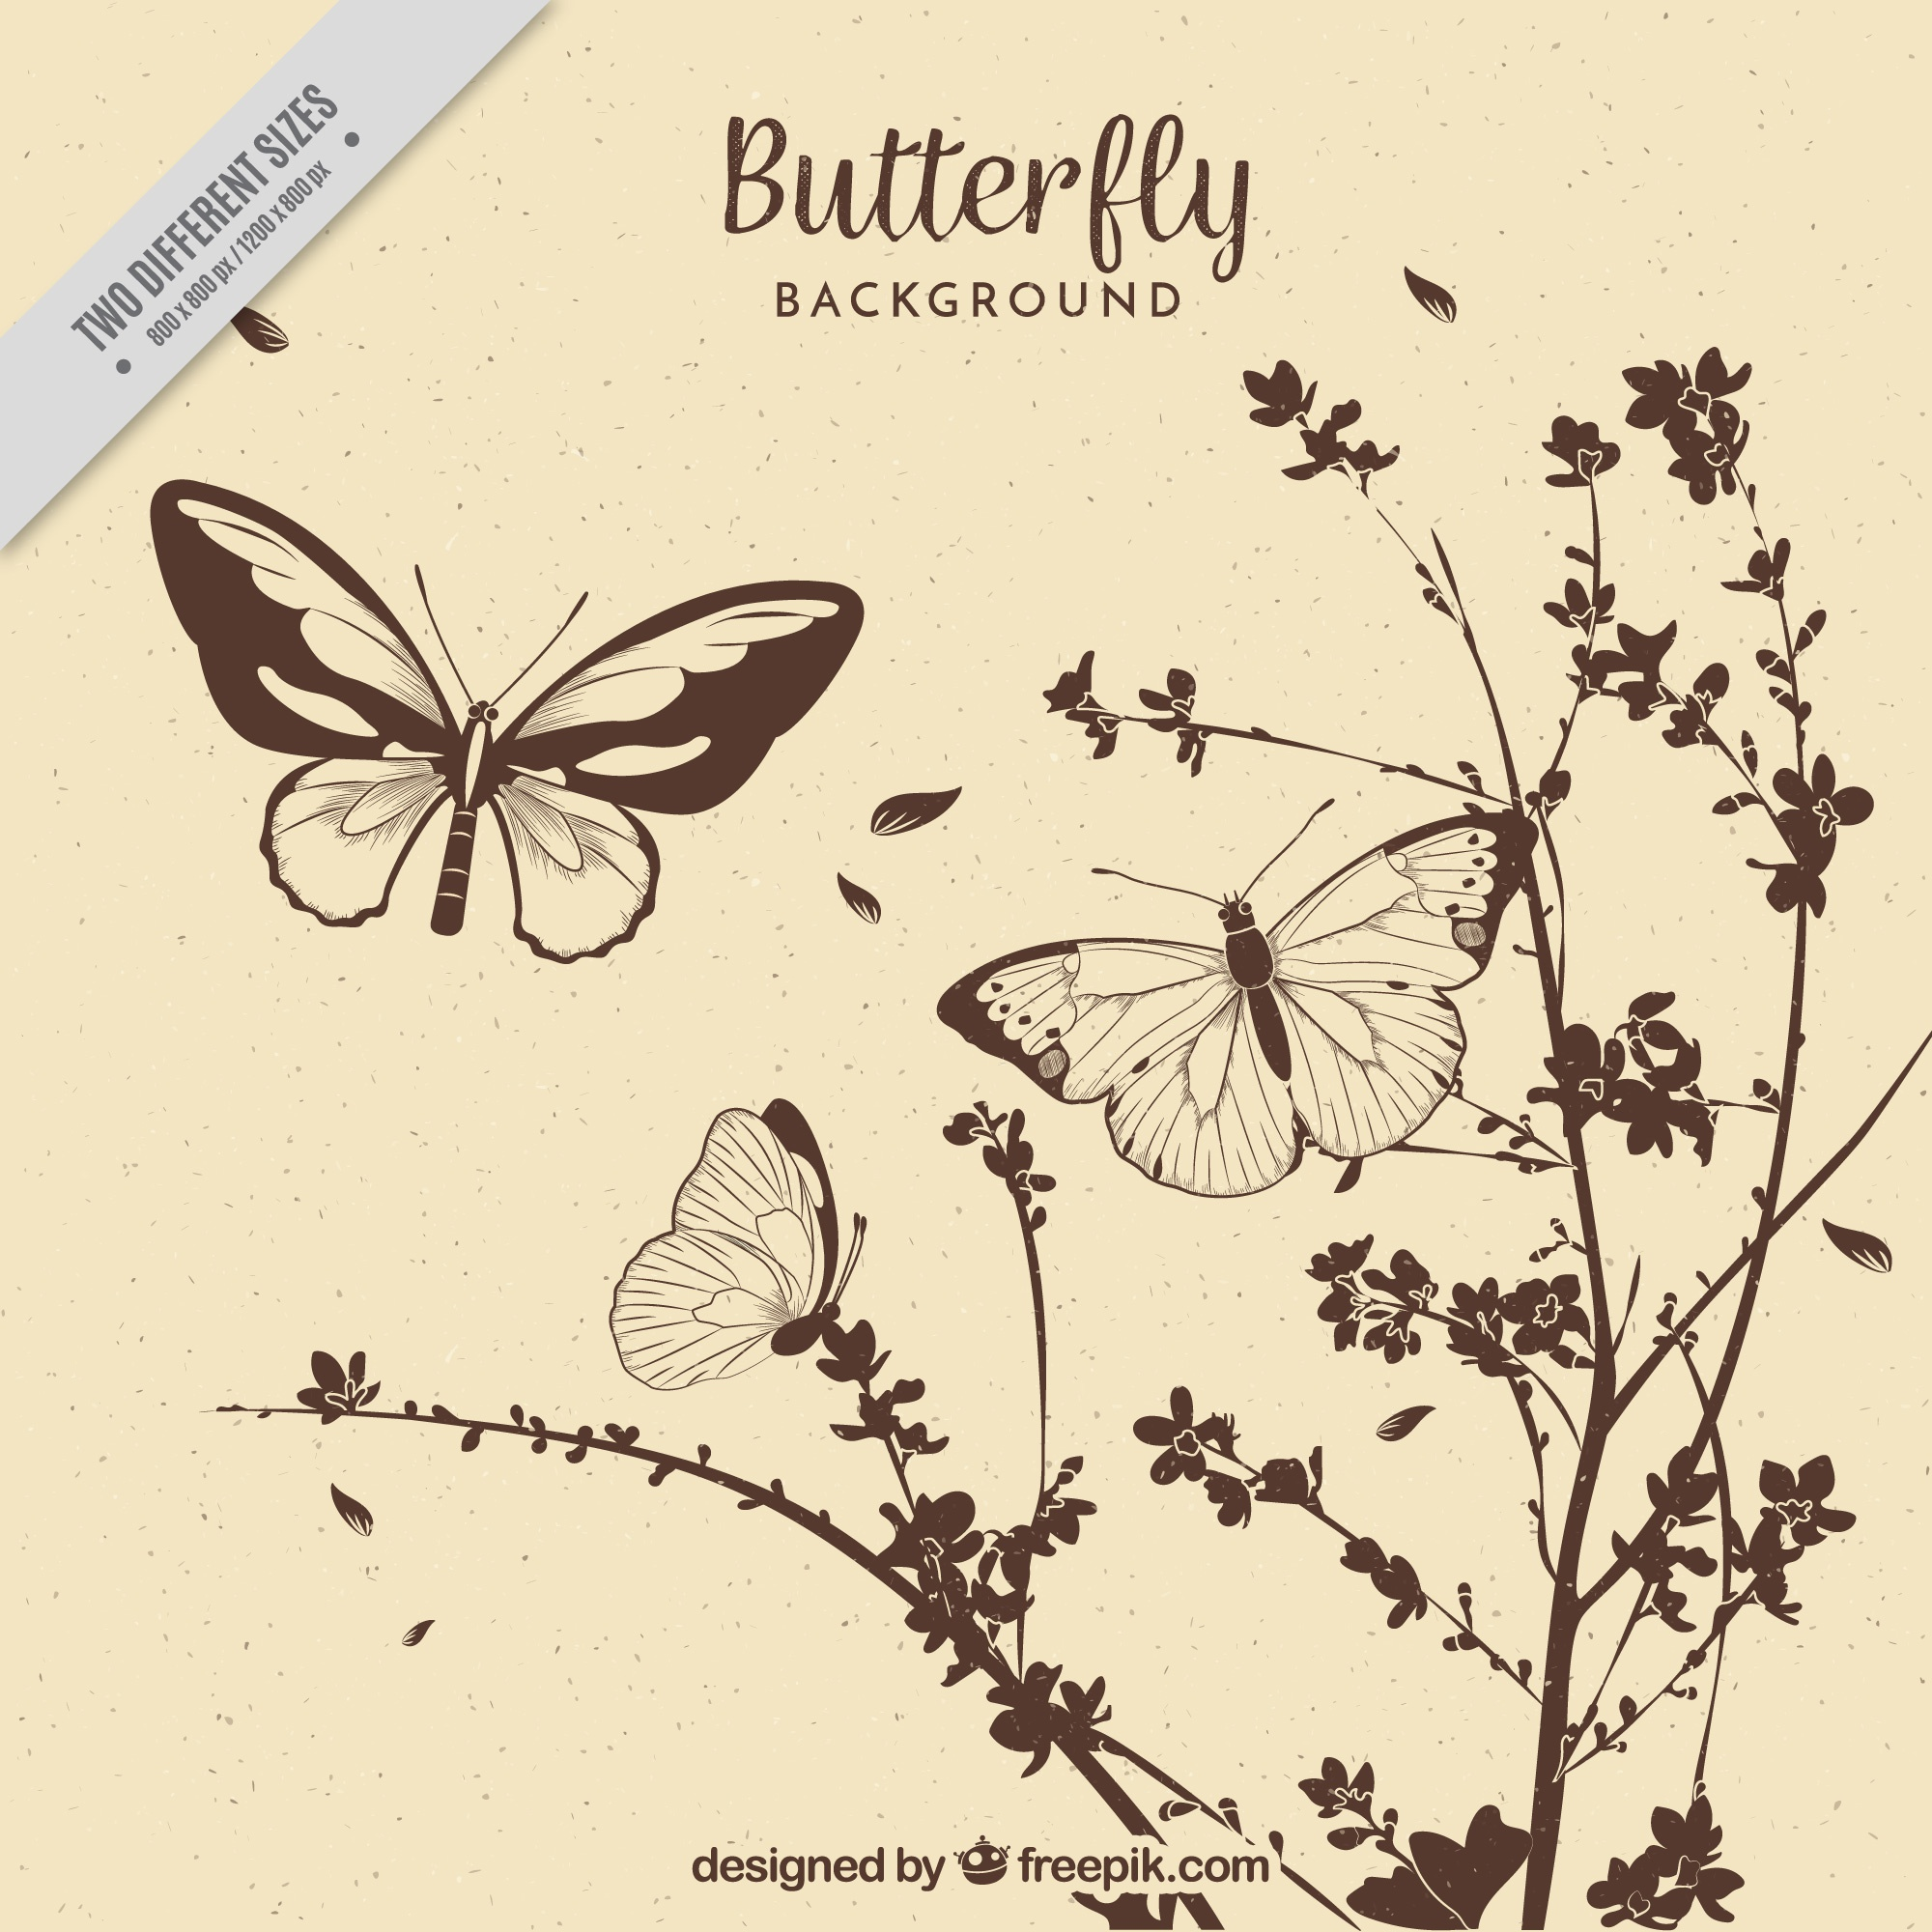 Vintage background of hand drawn flowers and butterflies